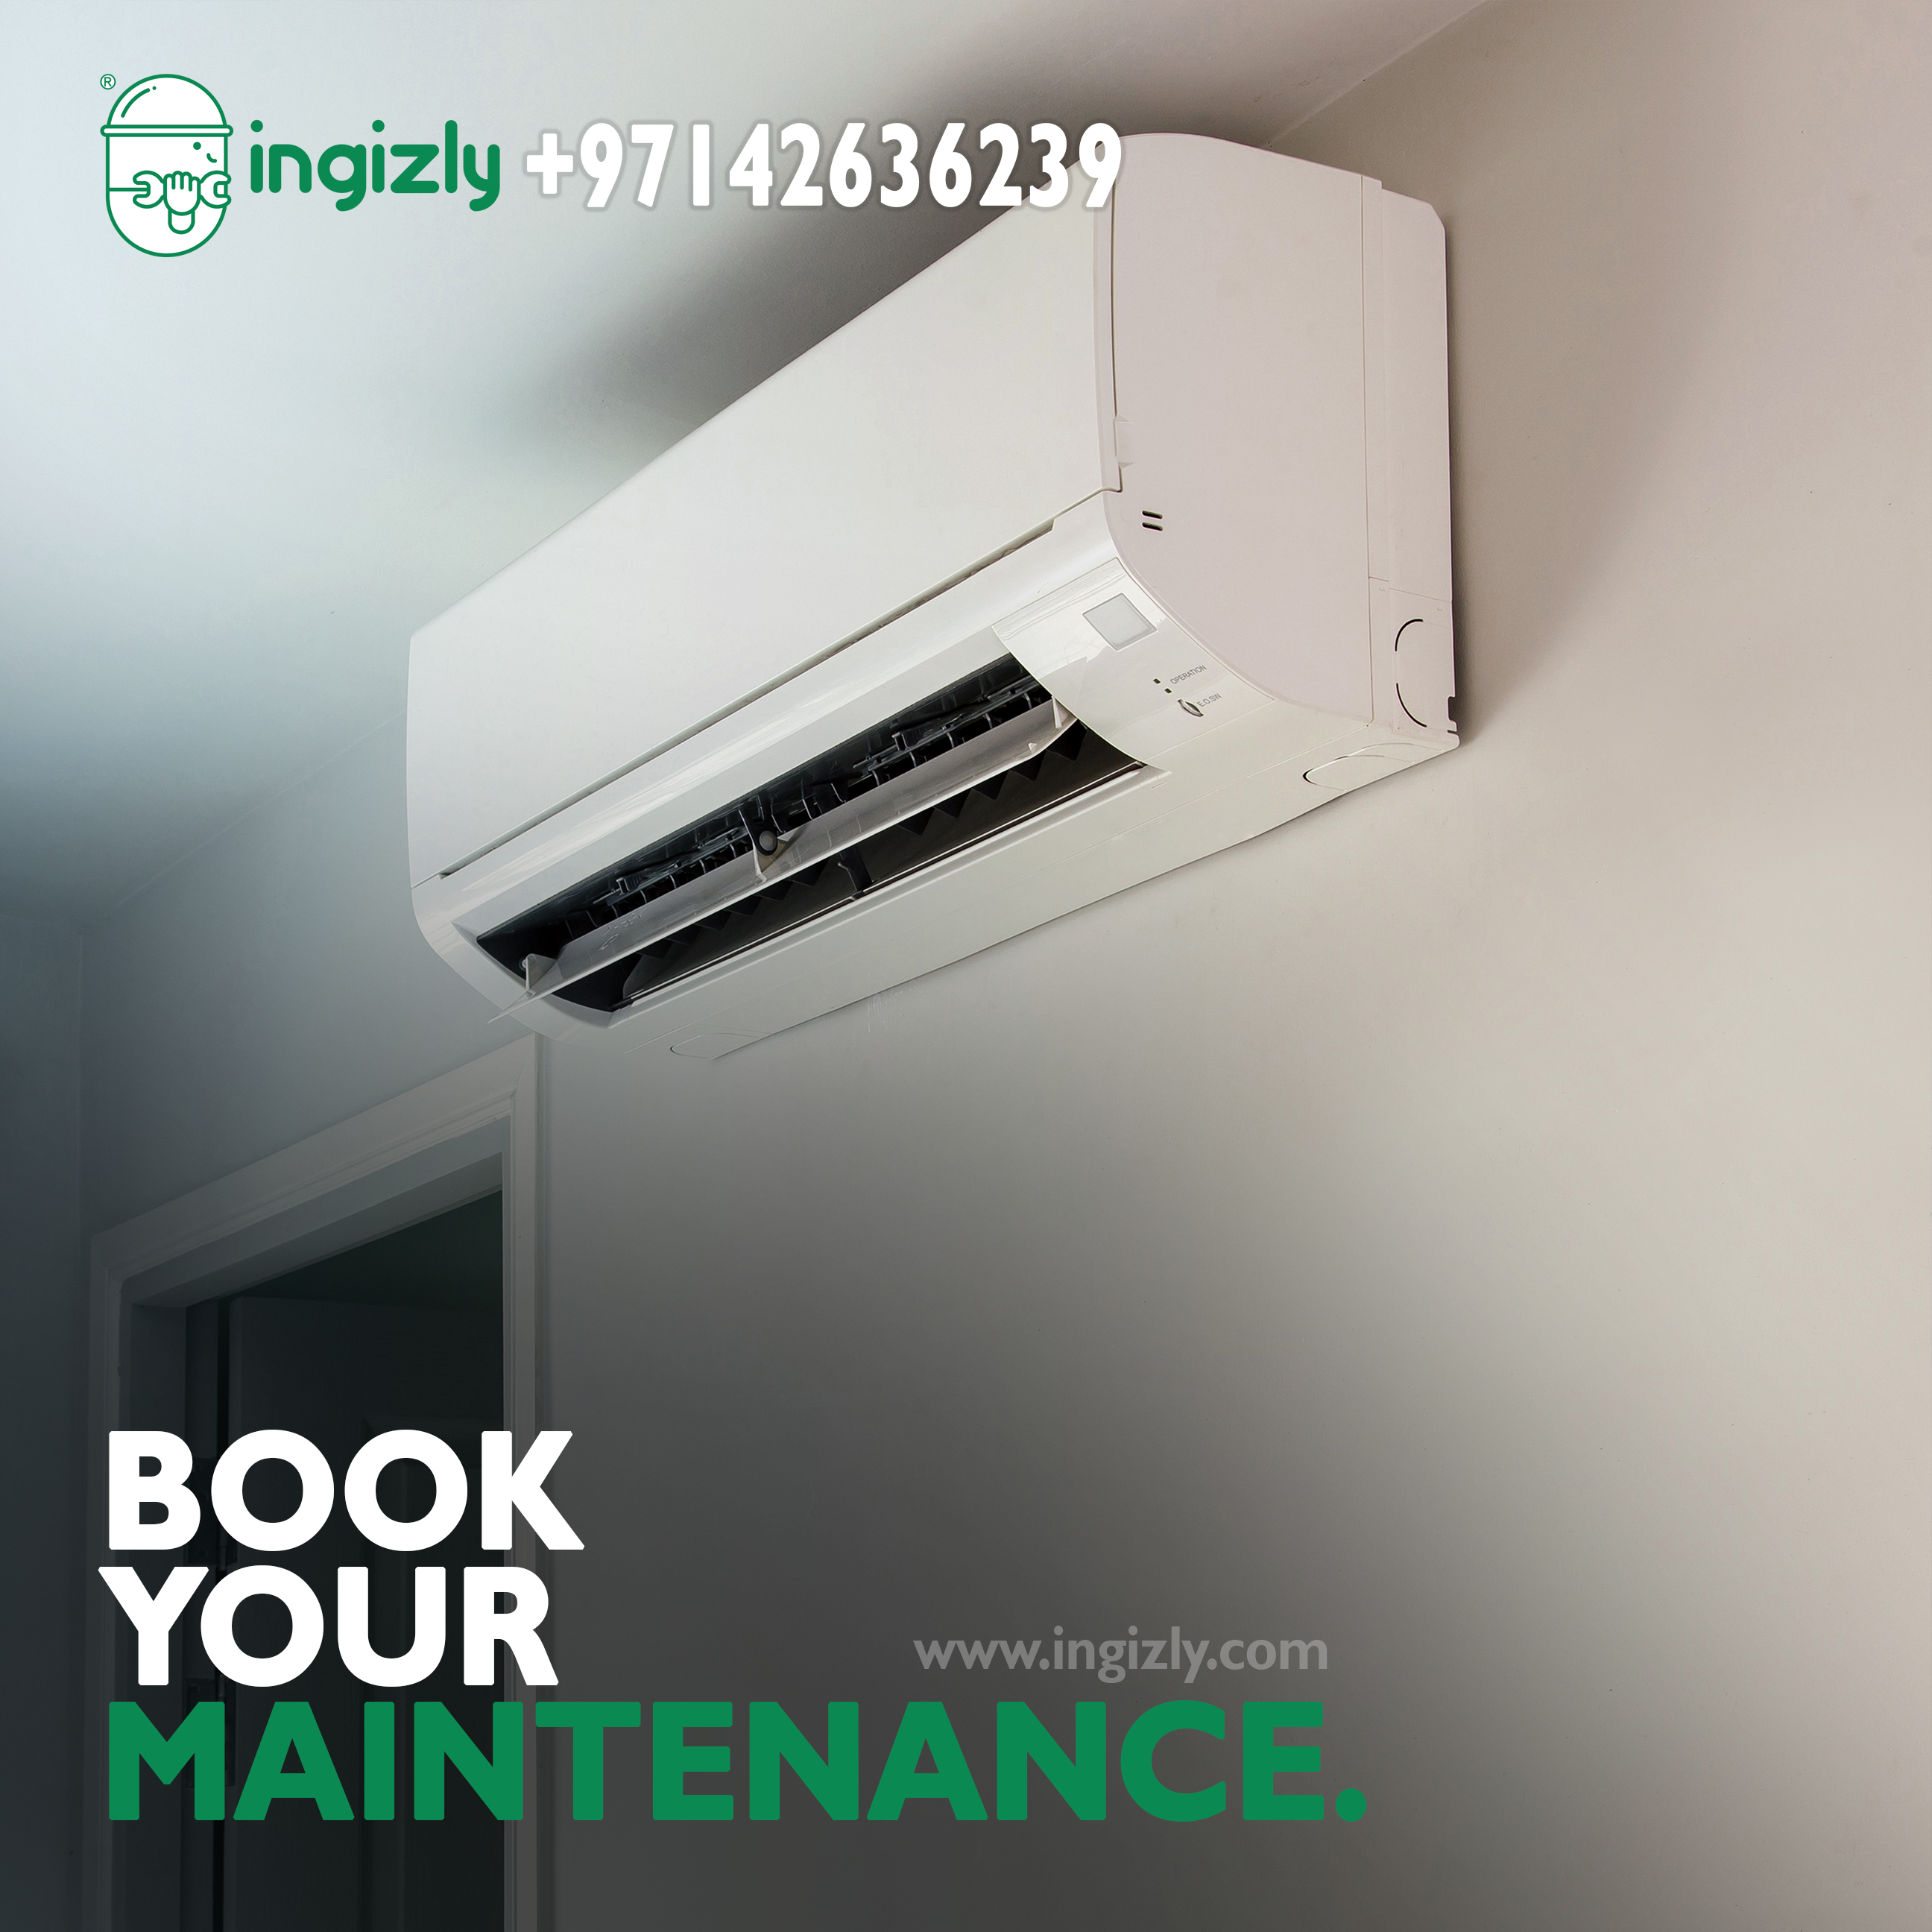 One stop service market. Air conditioning repair service